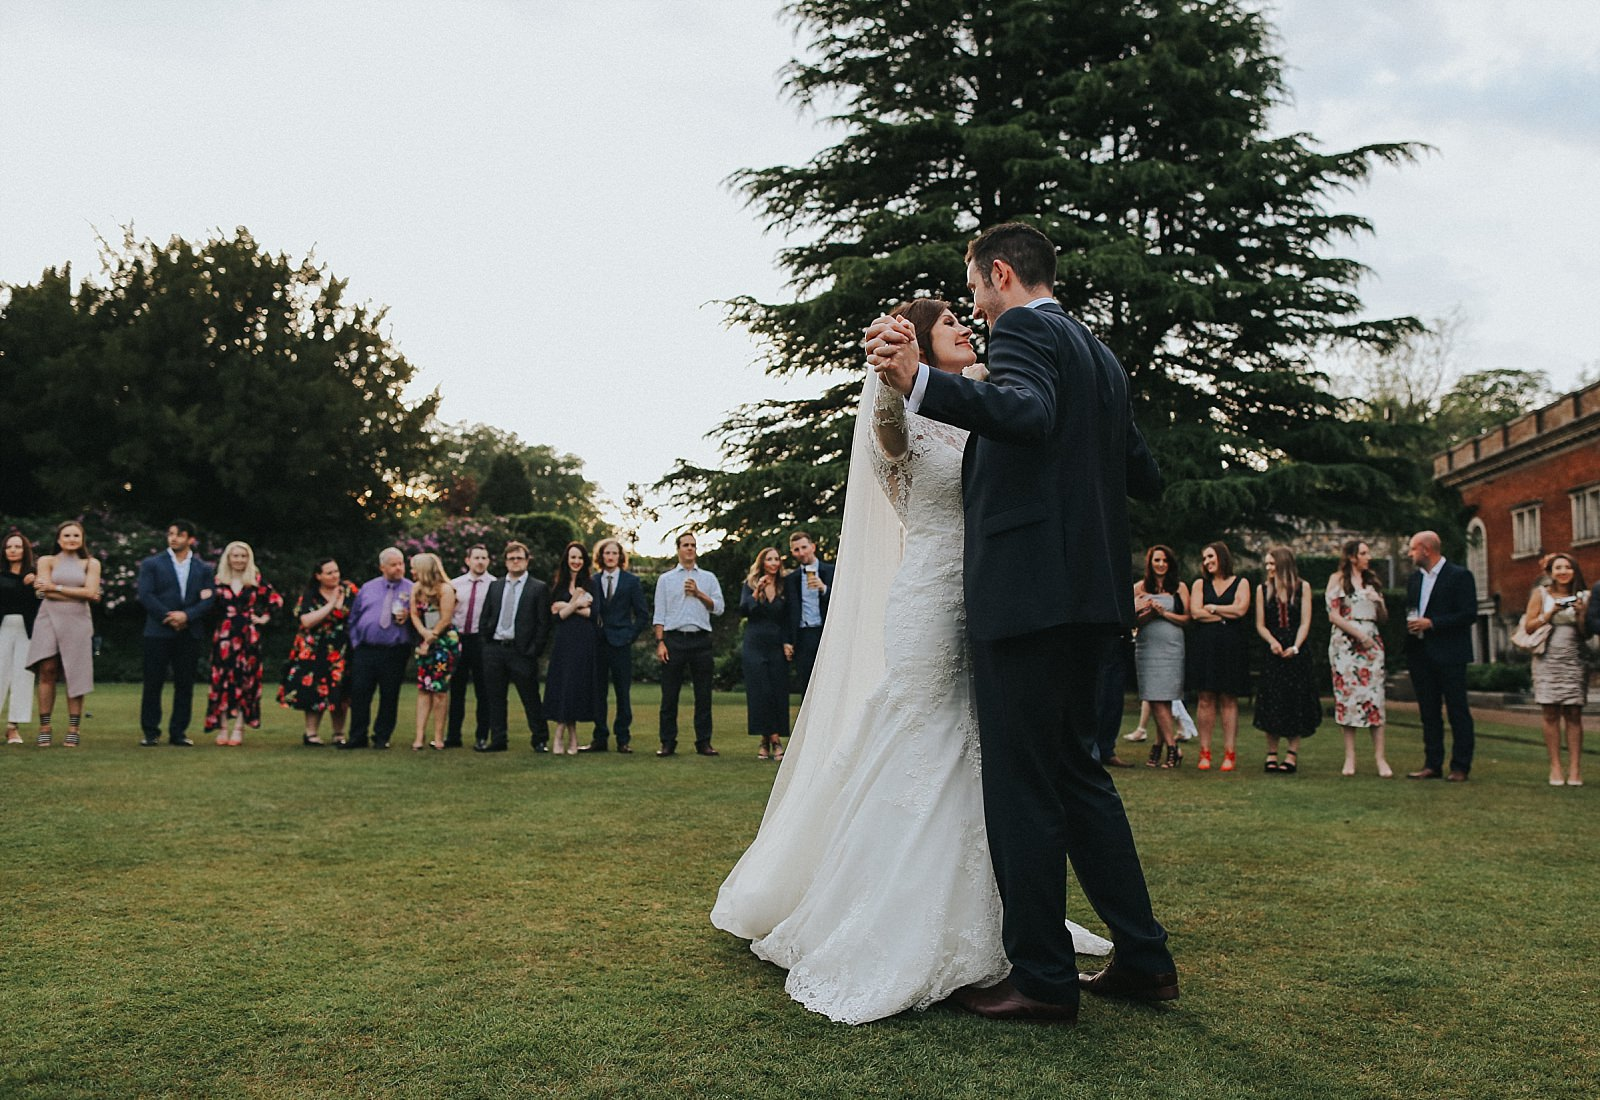 alternative wedding photographer captures first dance on the lawn